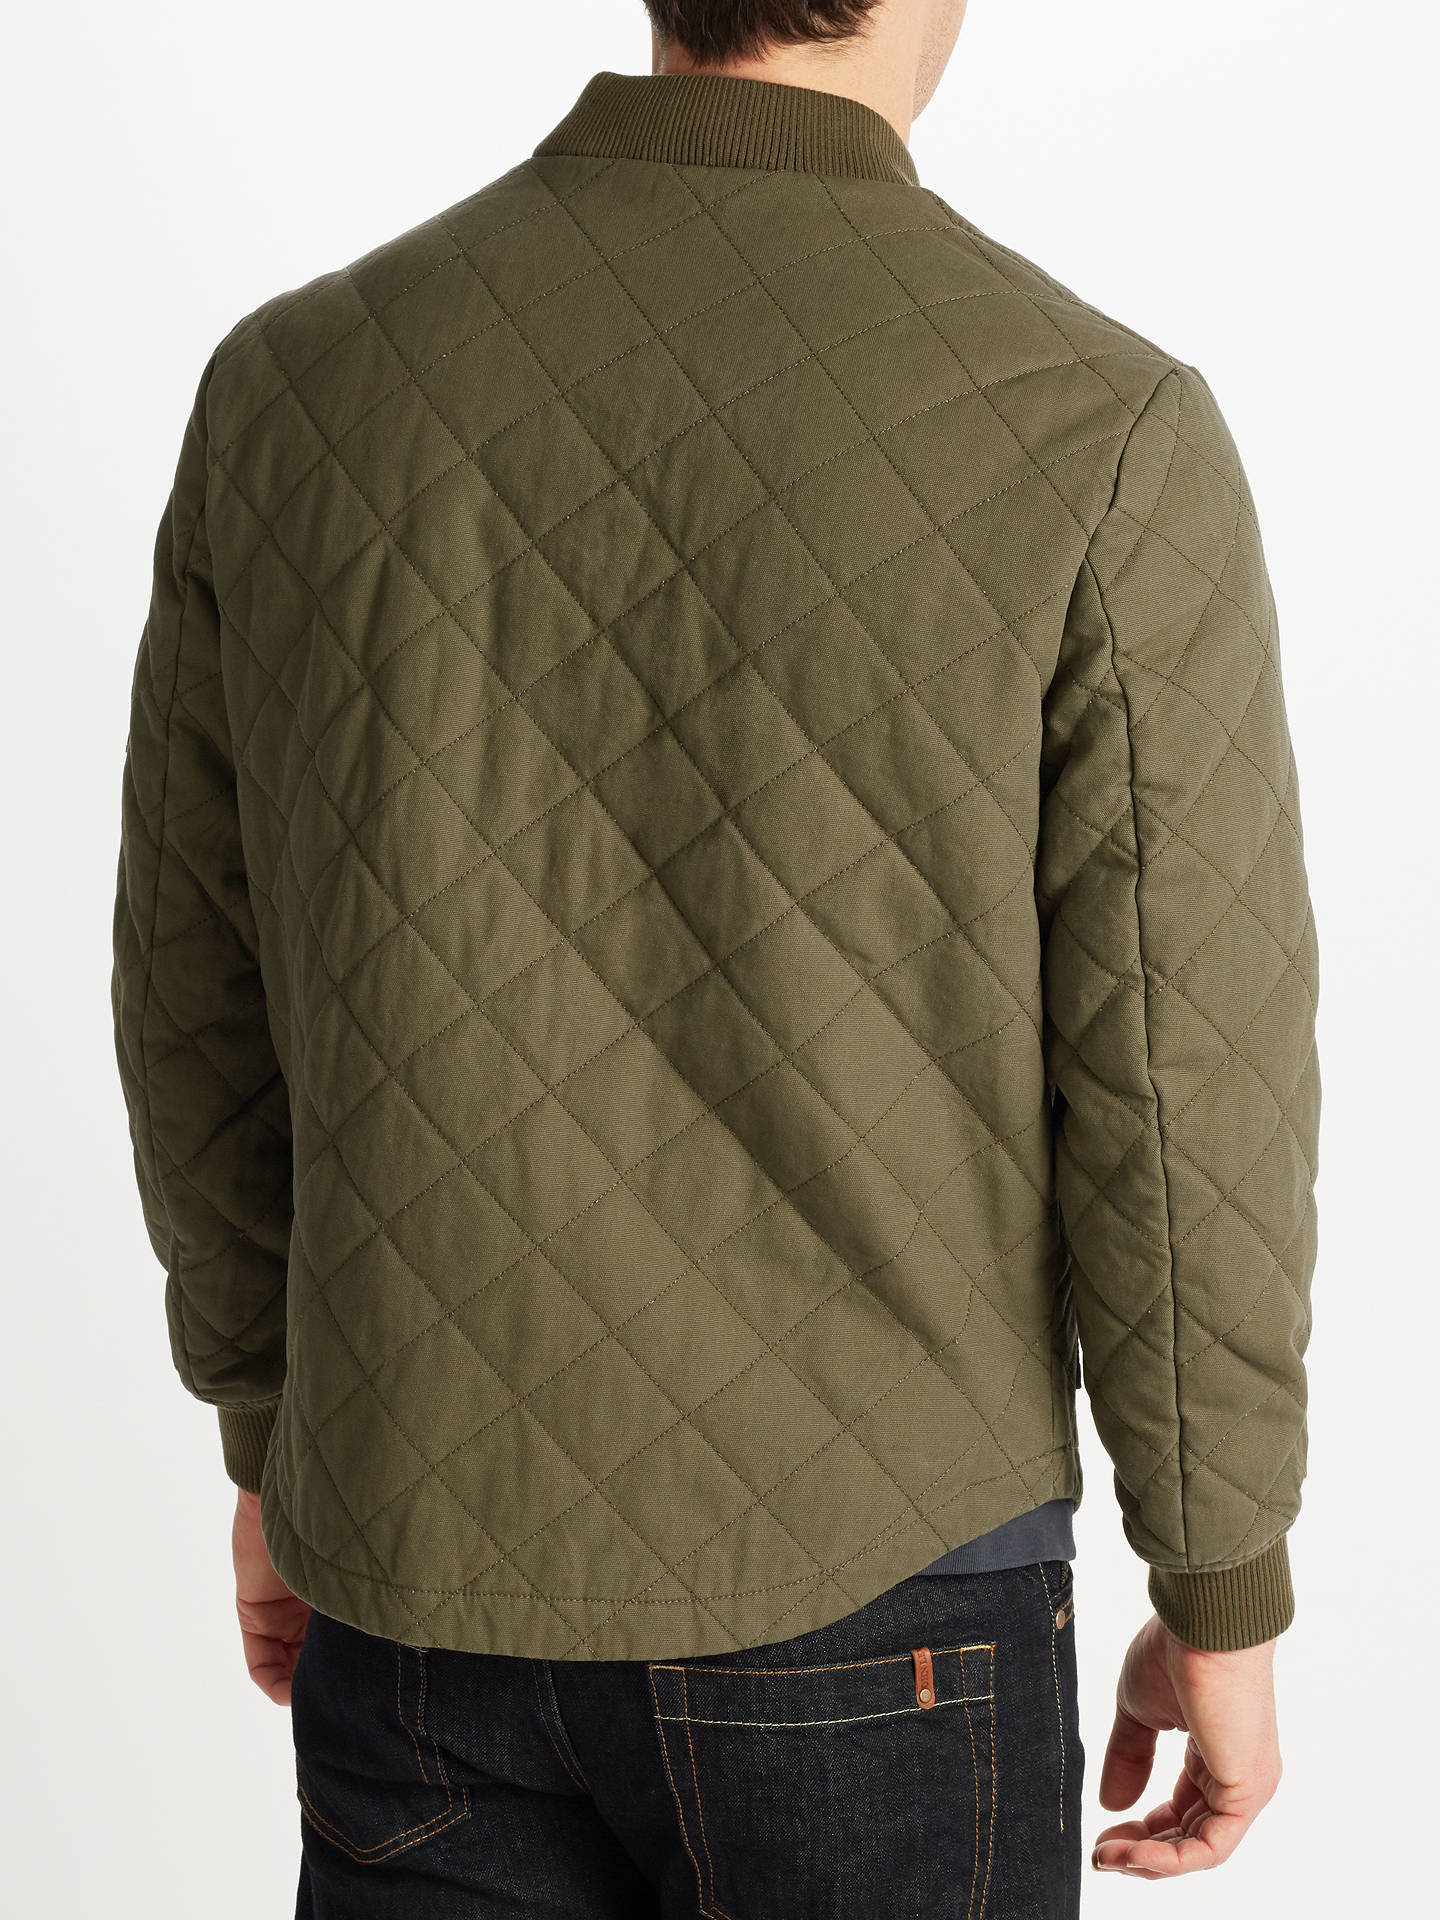 d1584bfa8 JOHN LEWIS & Co. Quilted Bomber Jacket, Khaki at John Lewis & Partners